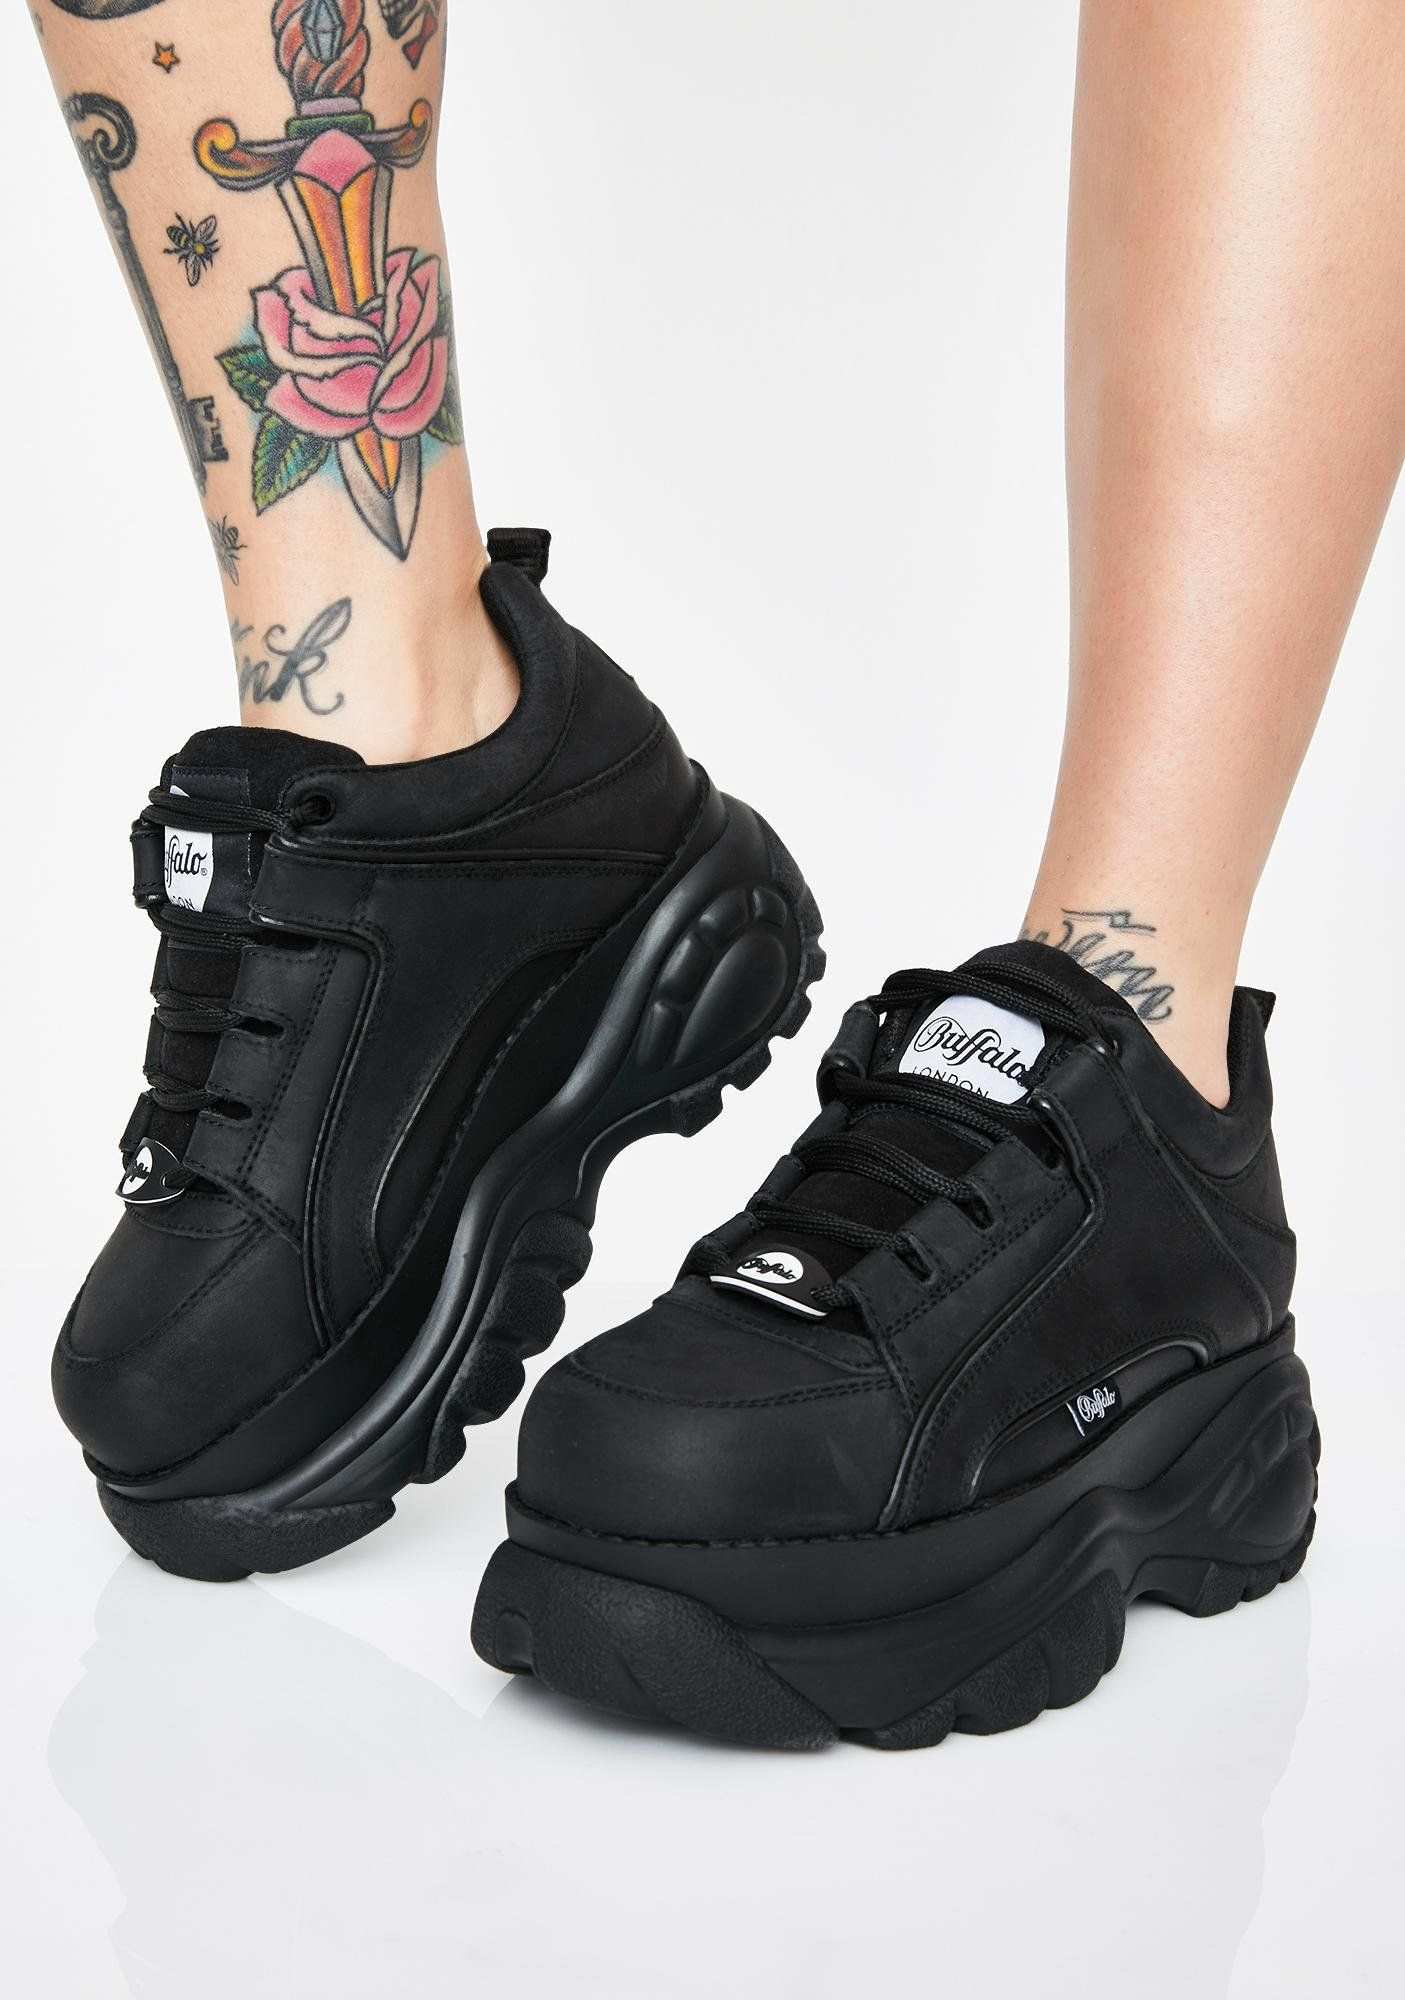 Leather sneakers, Sneakers, Platform boots